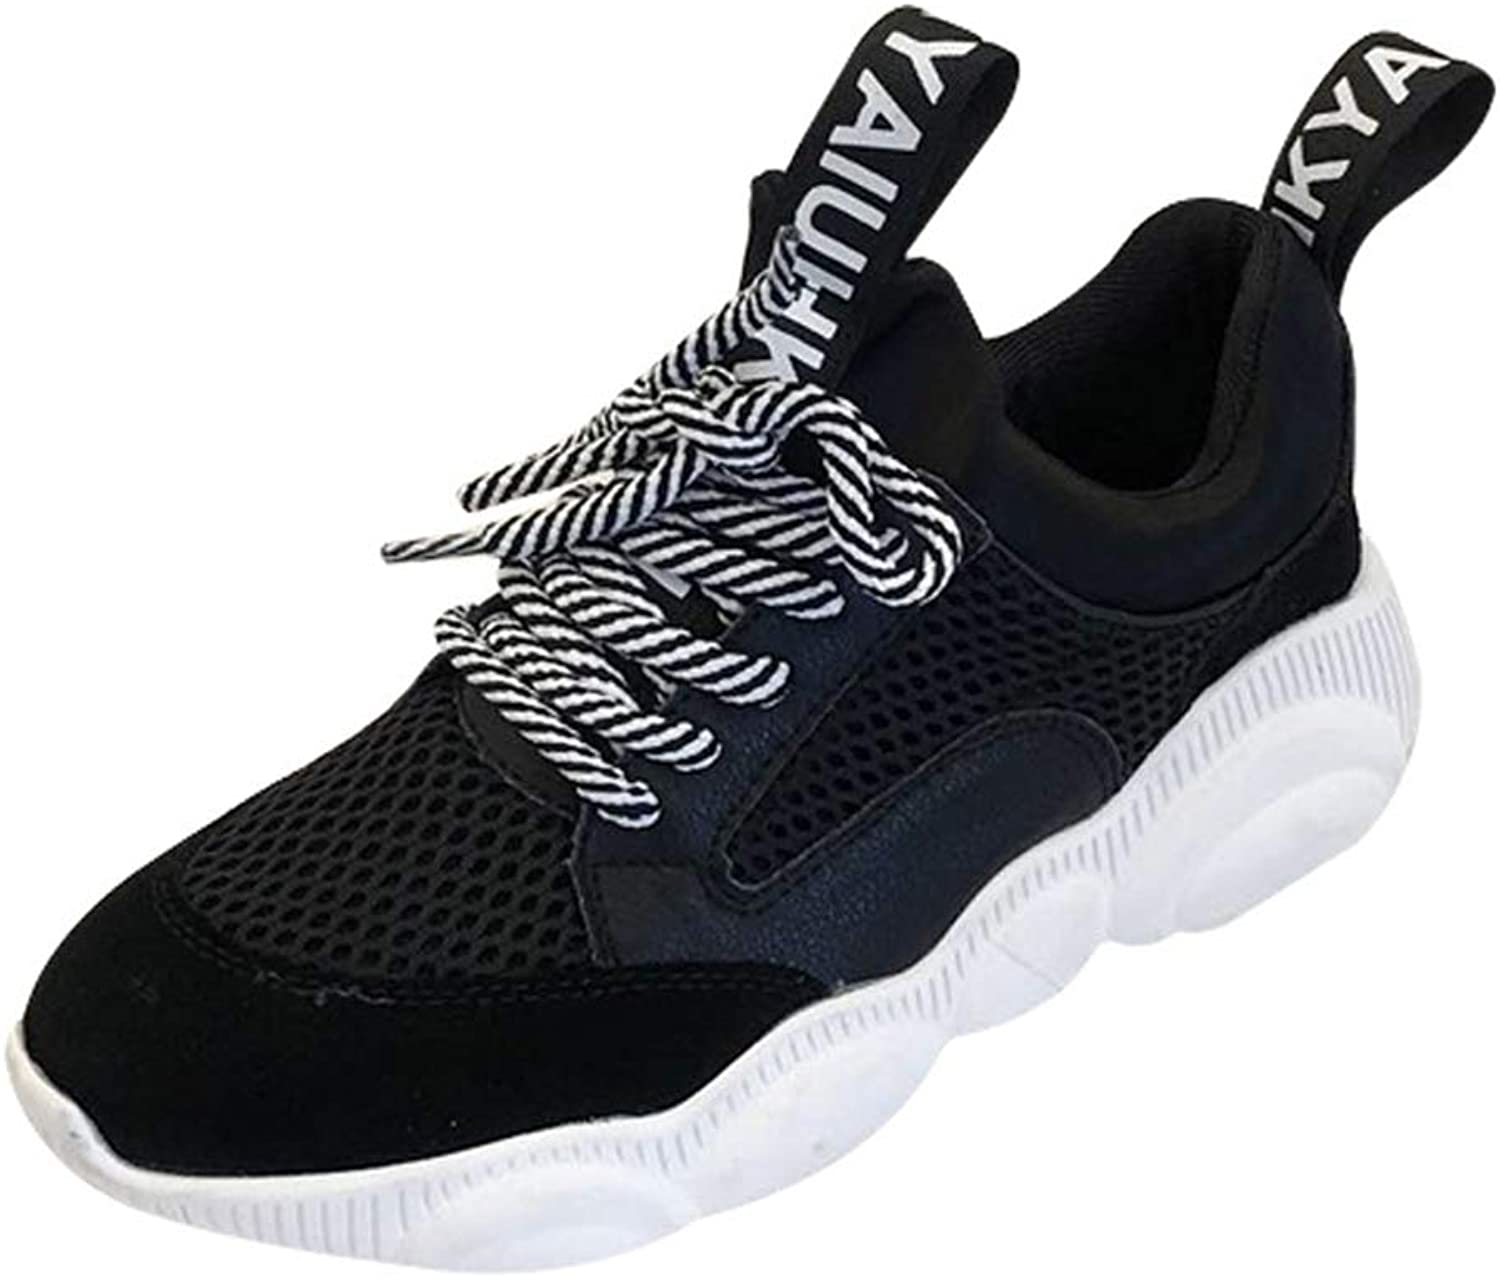 Women's Fashion Breathable Sneakers Casual Lightweight Running shoes for Walking